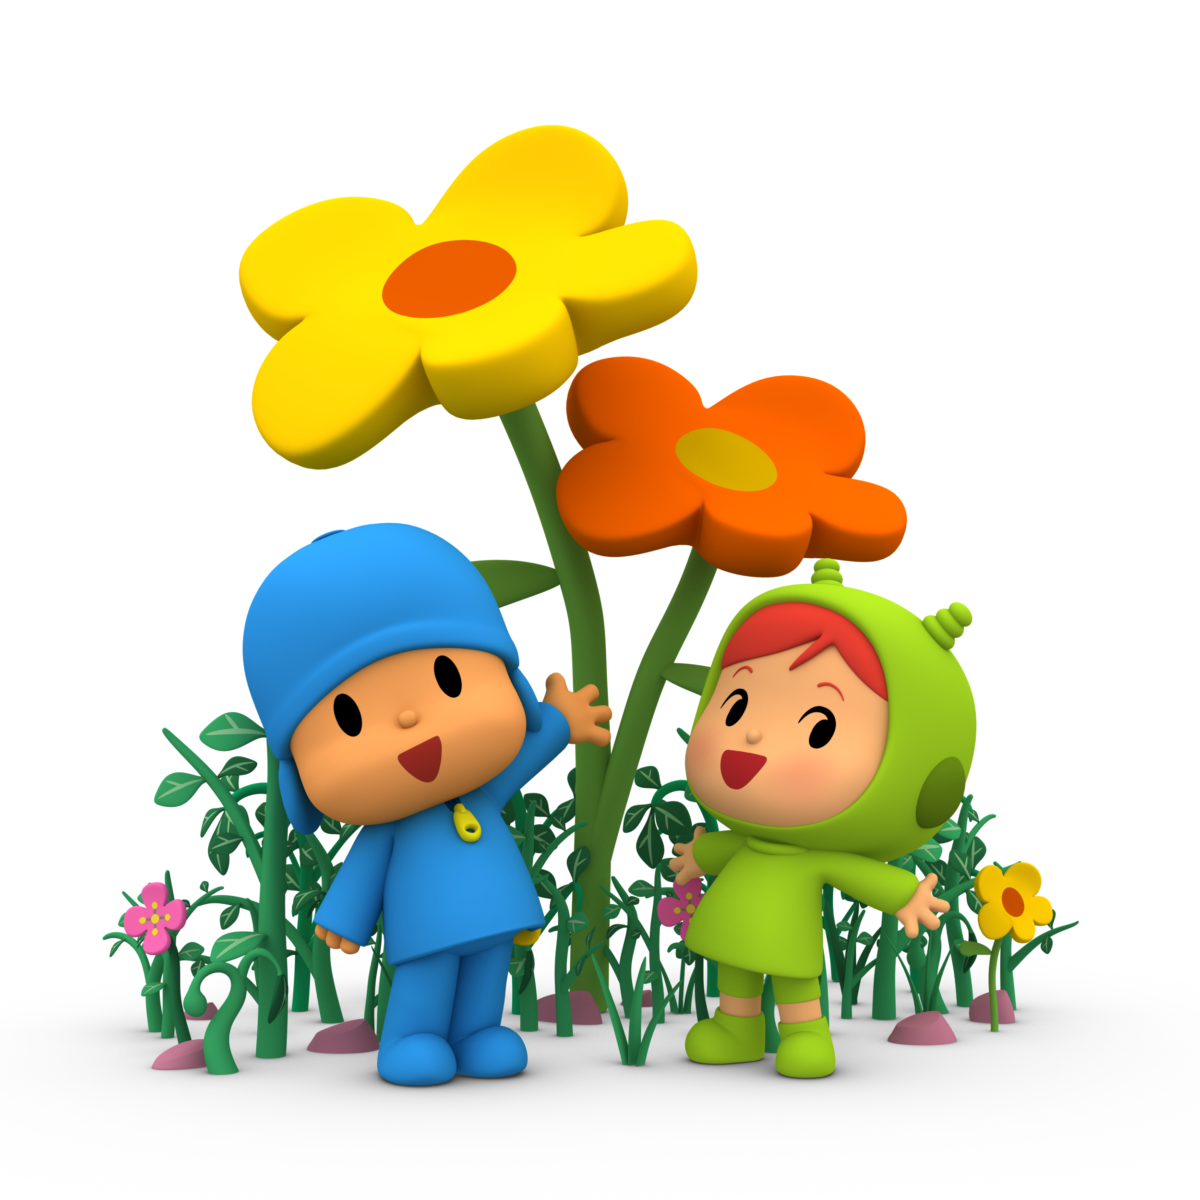 Pocoyo and Nina for the first time in Juvenalia